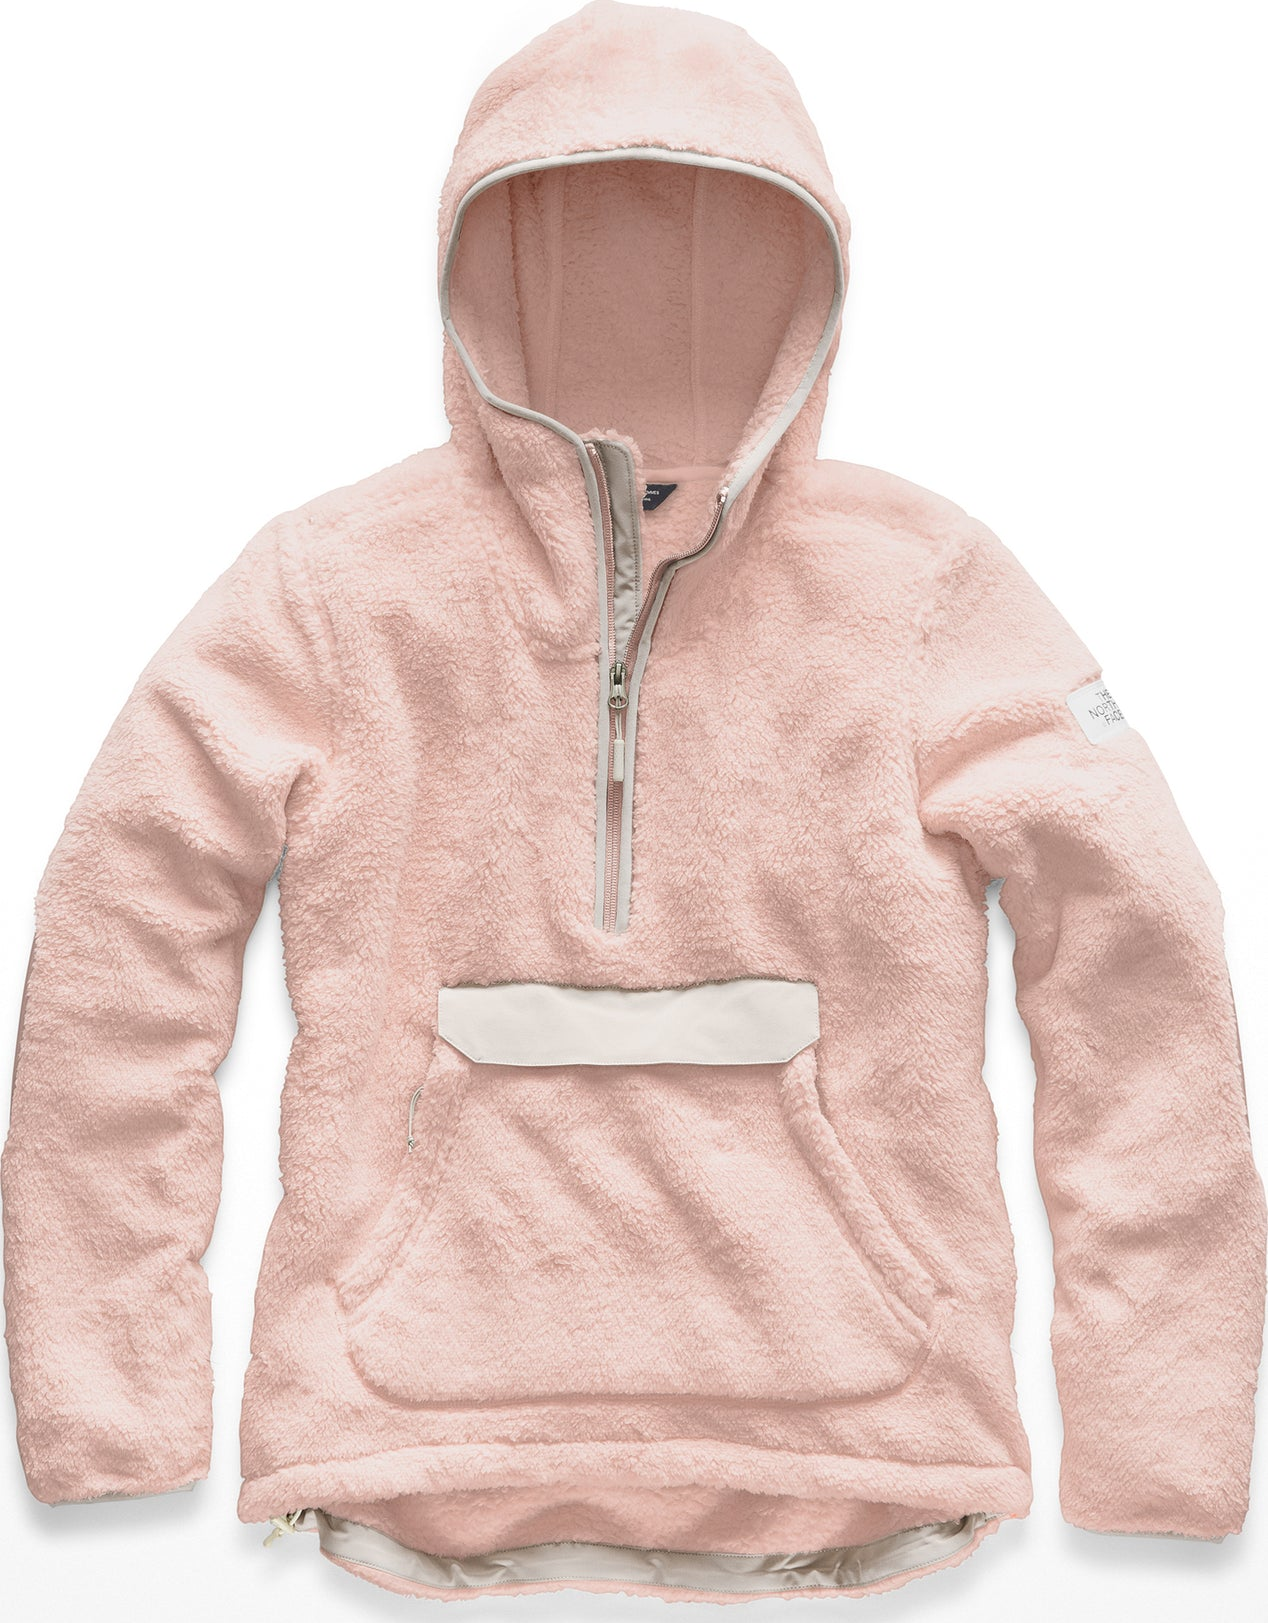 94b9e067d The North Face Campshire Pullover Hoodie - Women's